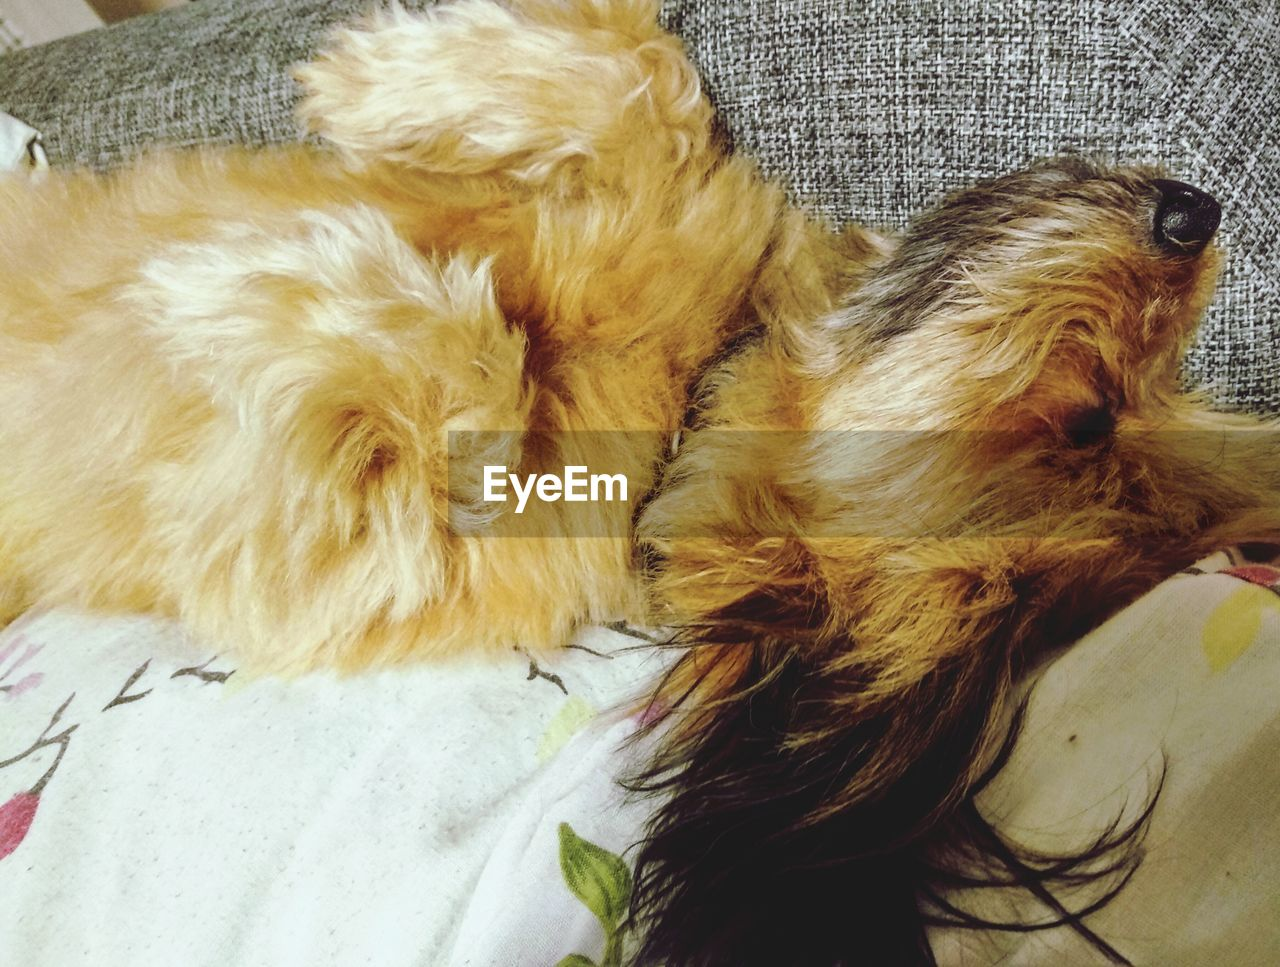 domestic, pets, domestic animals, mammal, animal themes, dog, one animal, canine, animal, relaxation, furniture, vertebrate, indoors, sleeping, home interior, animal hair, bed, hair, lying down, high angle view, no people